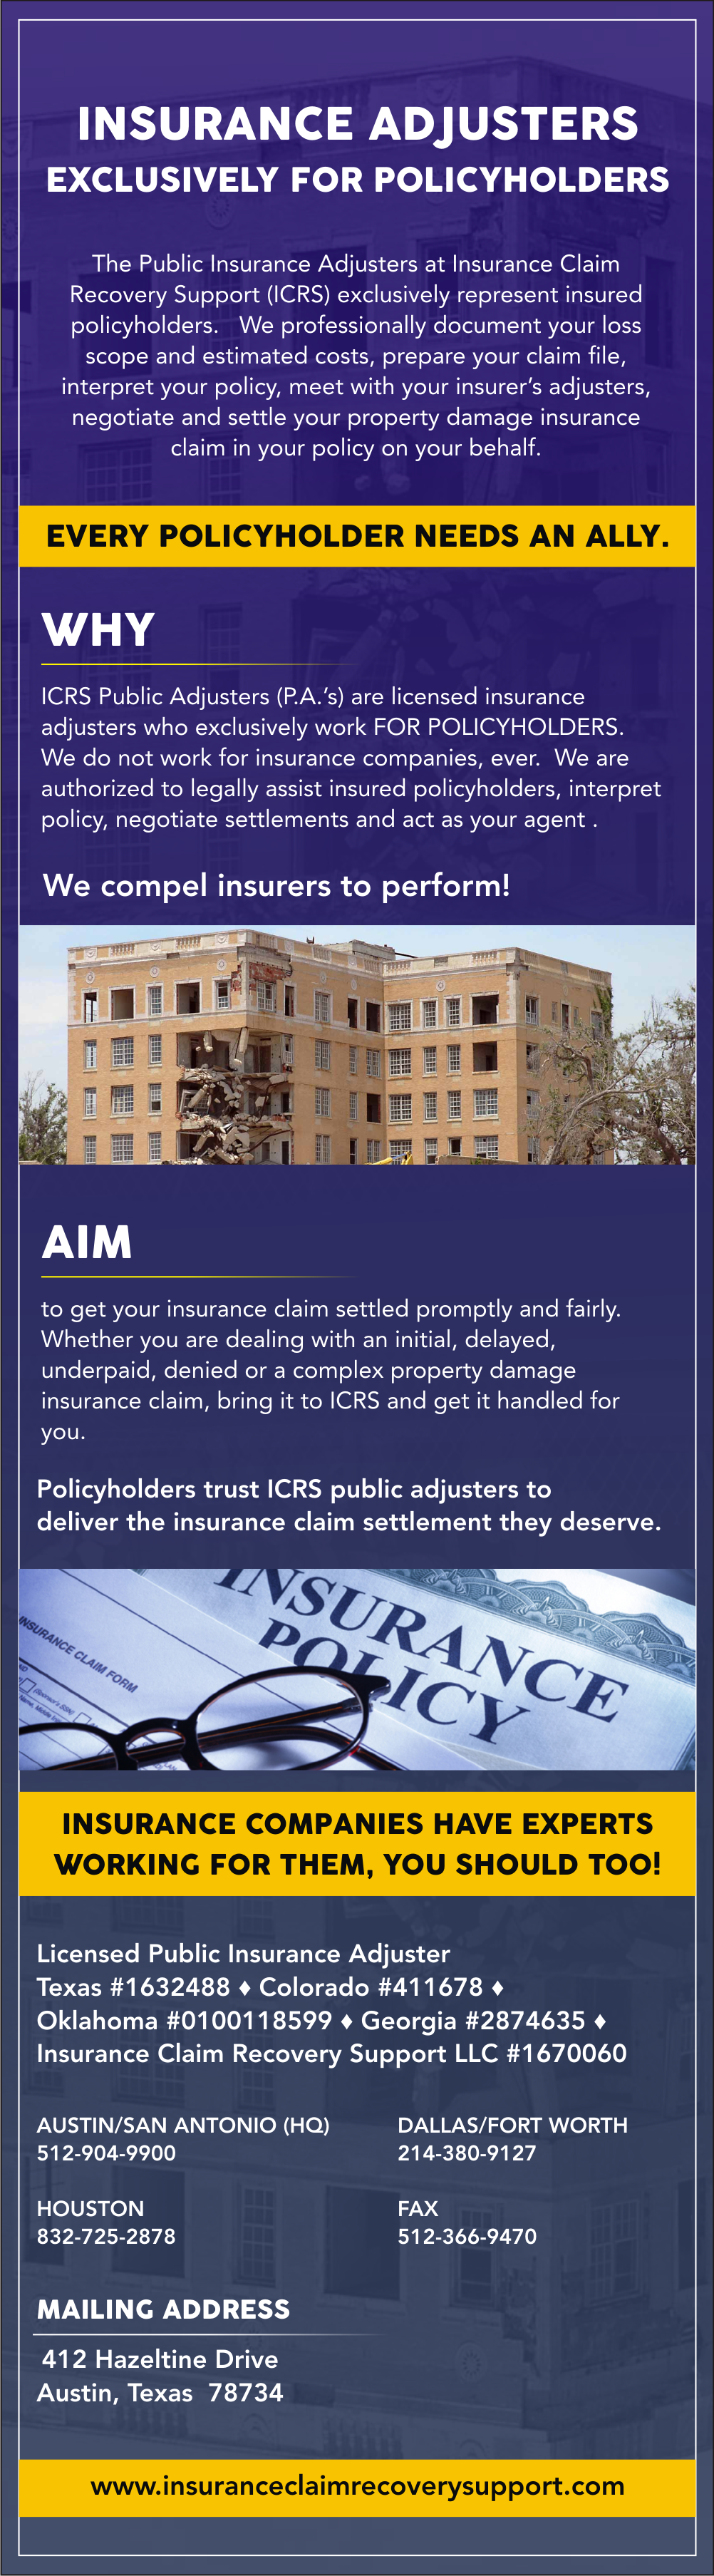 Insurance Claim Recovery Support LLC (http//www